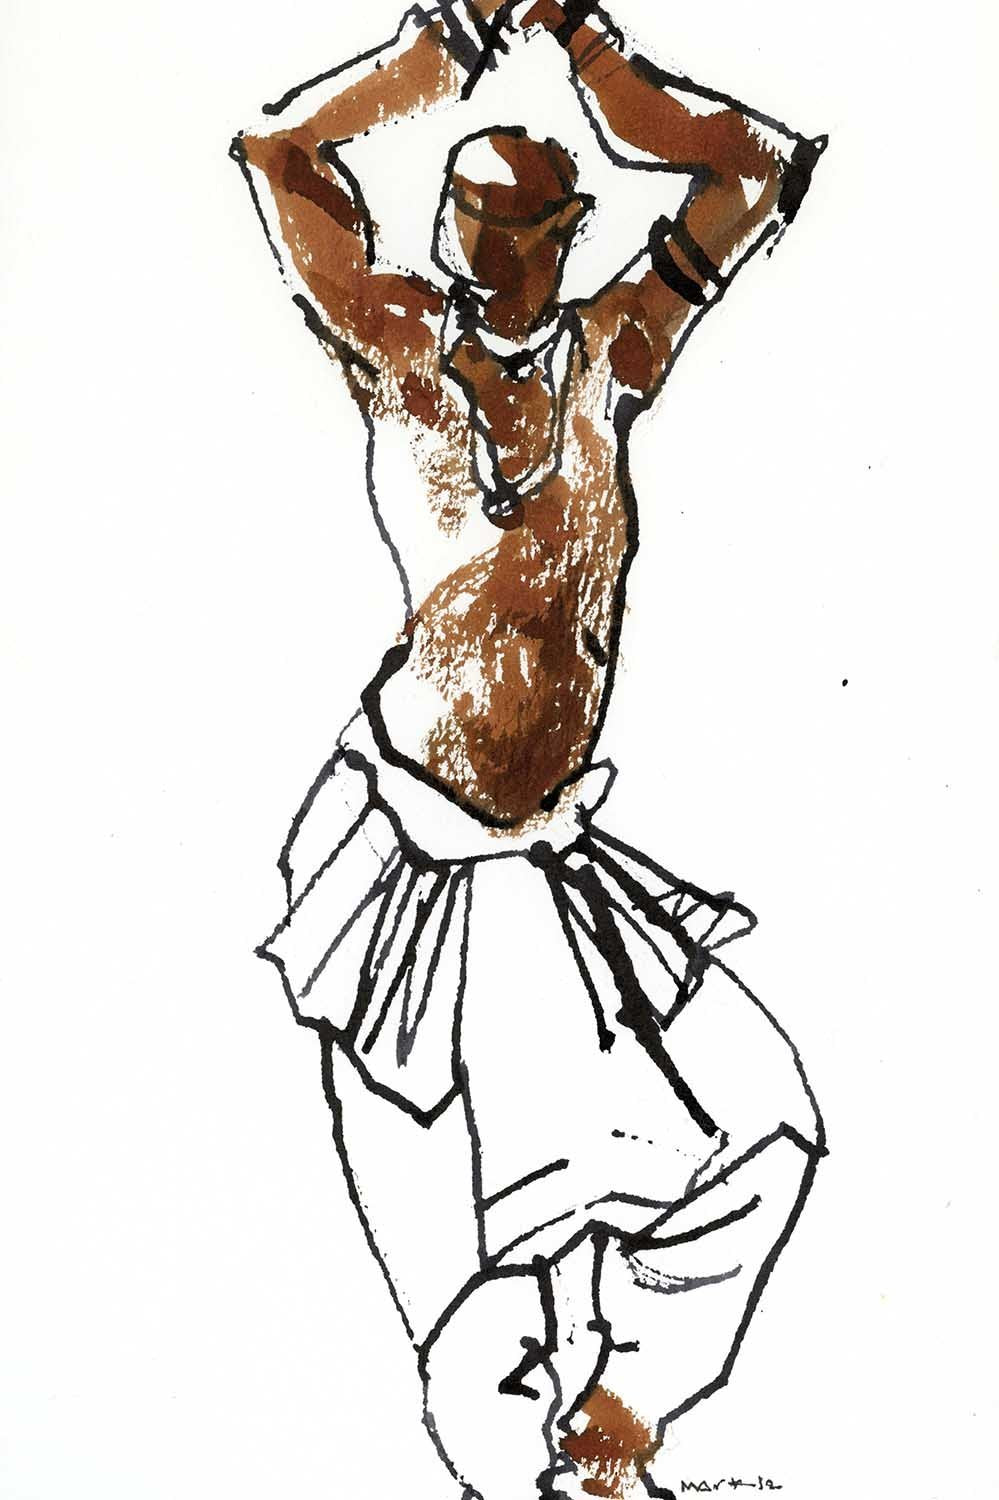 Performer 240|S. Mark Rathinaraj- Pen and Ink on Paper, , 8.5 x 5.5 inches